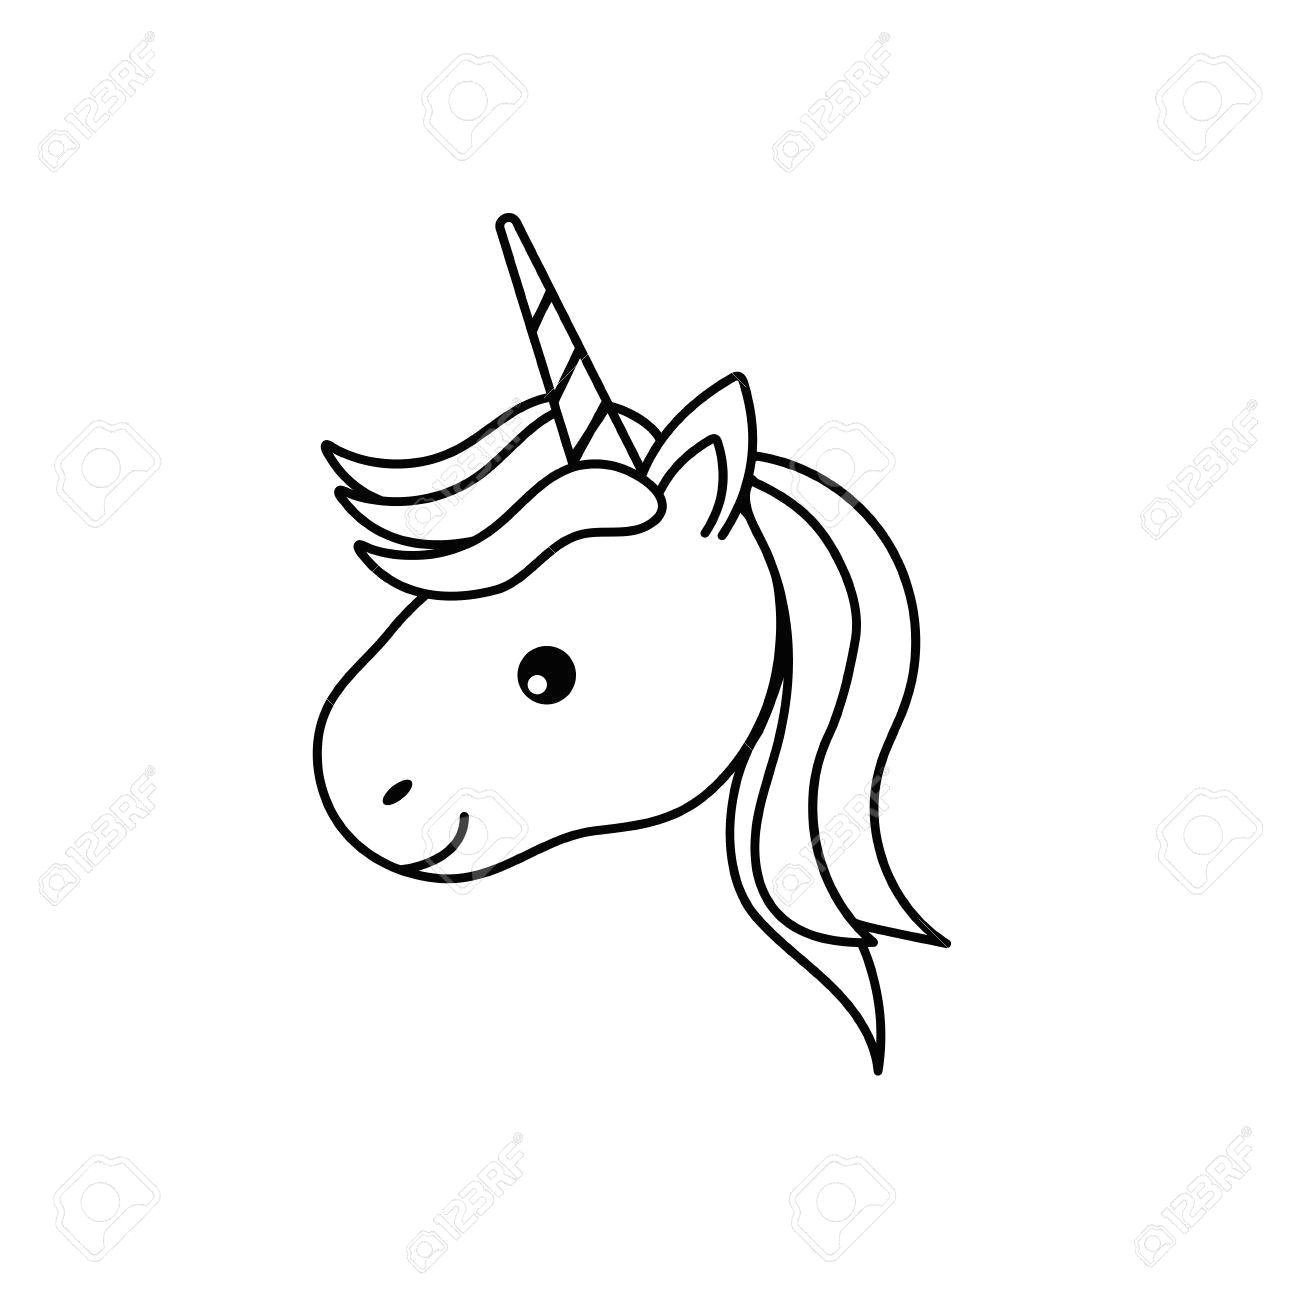 image result for line drawing unicorn